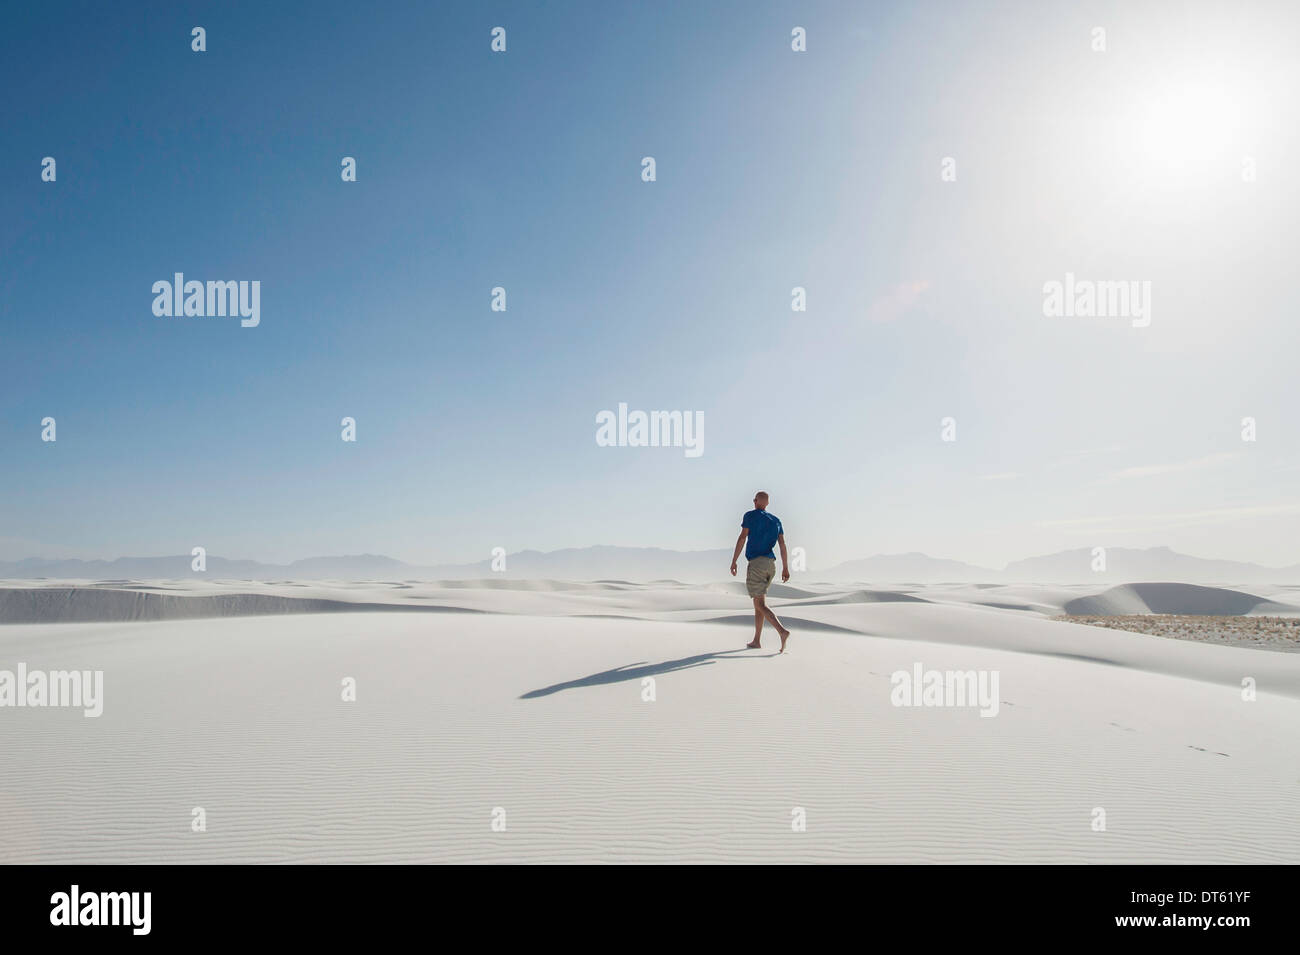 Young man walking on sand dune, White sands, New Mexico, USA - Stock Image